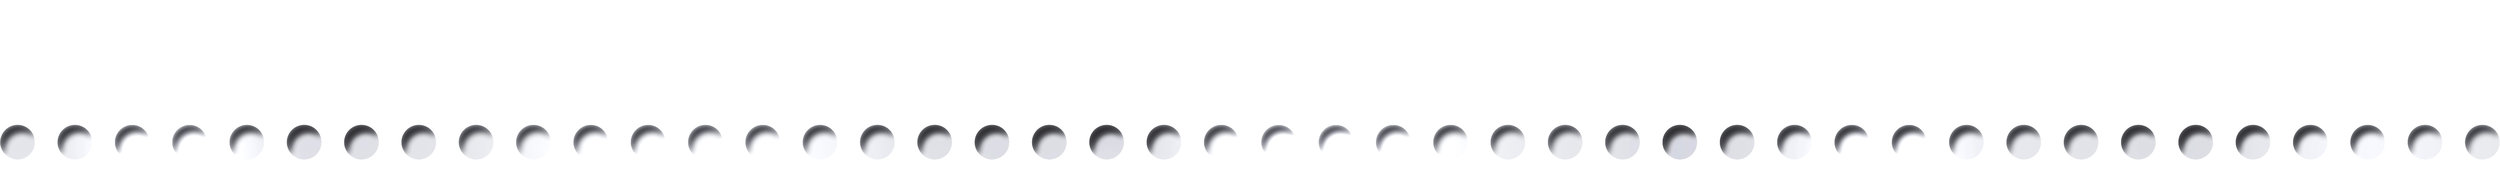 perforation-dots-w-variable-shadow.jpg